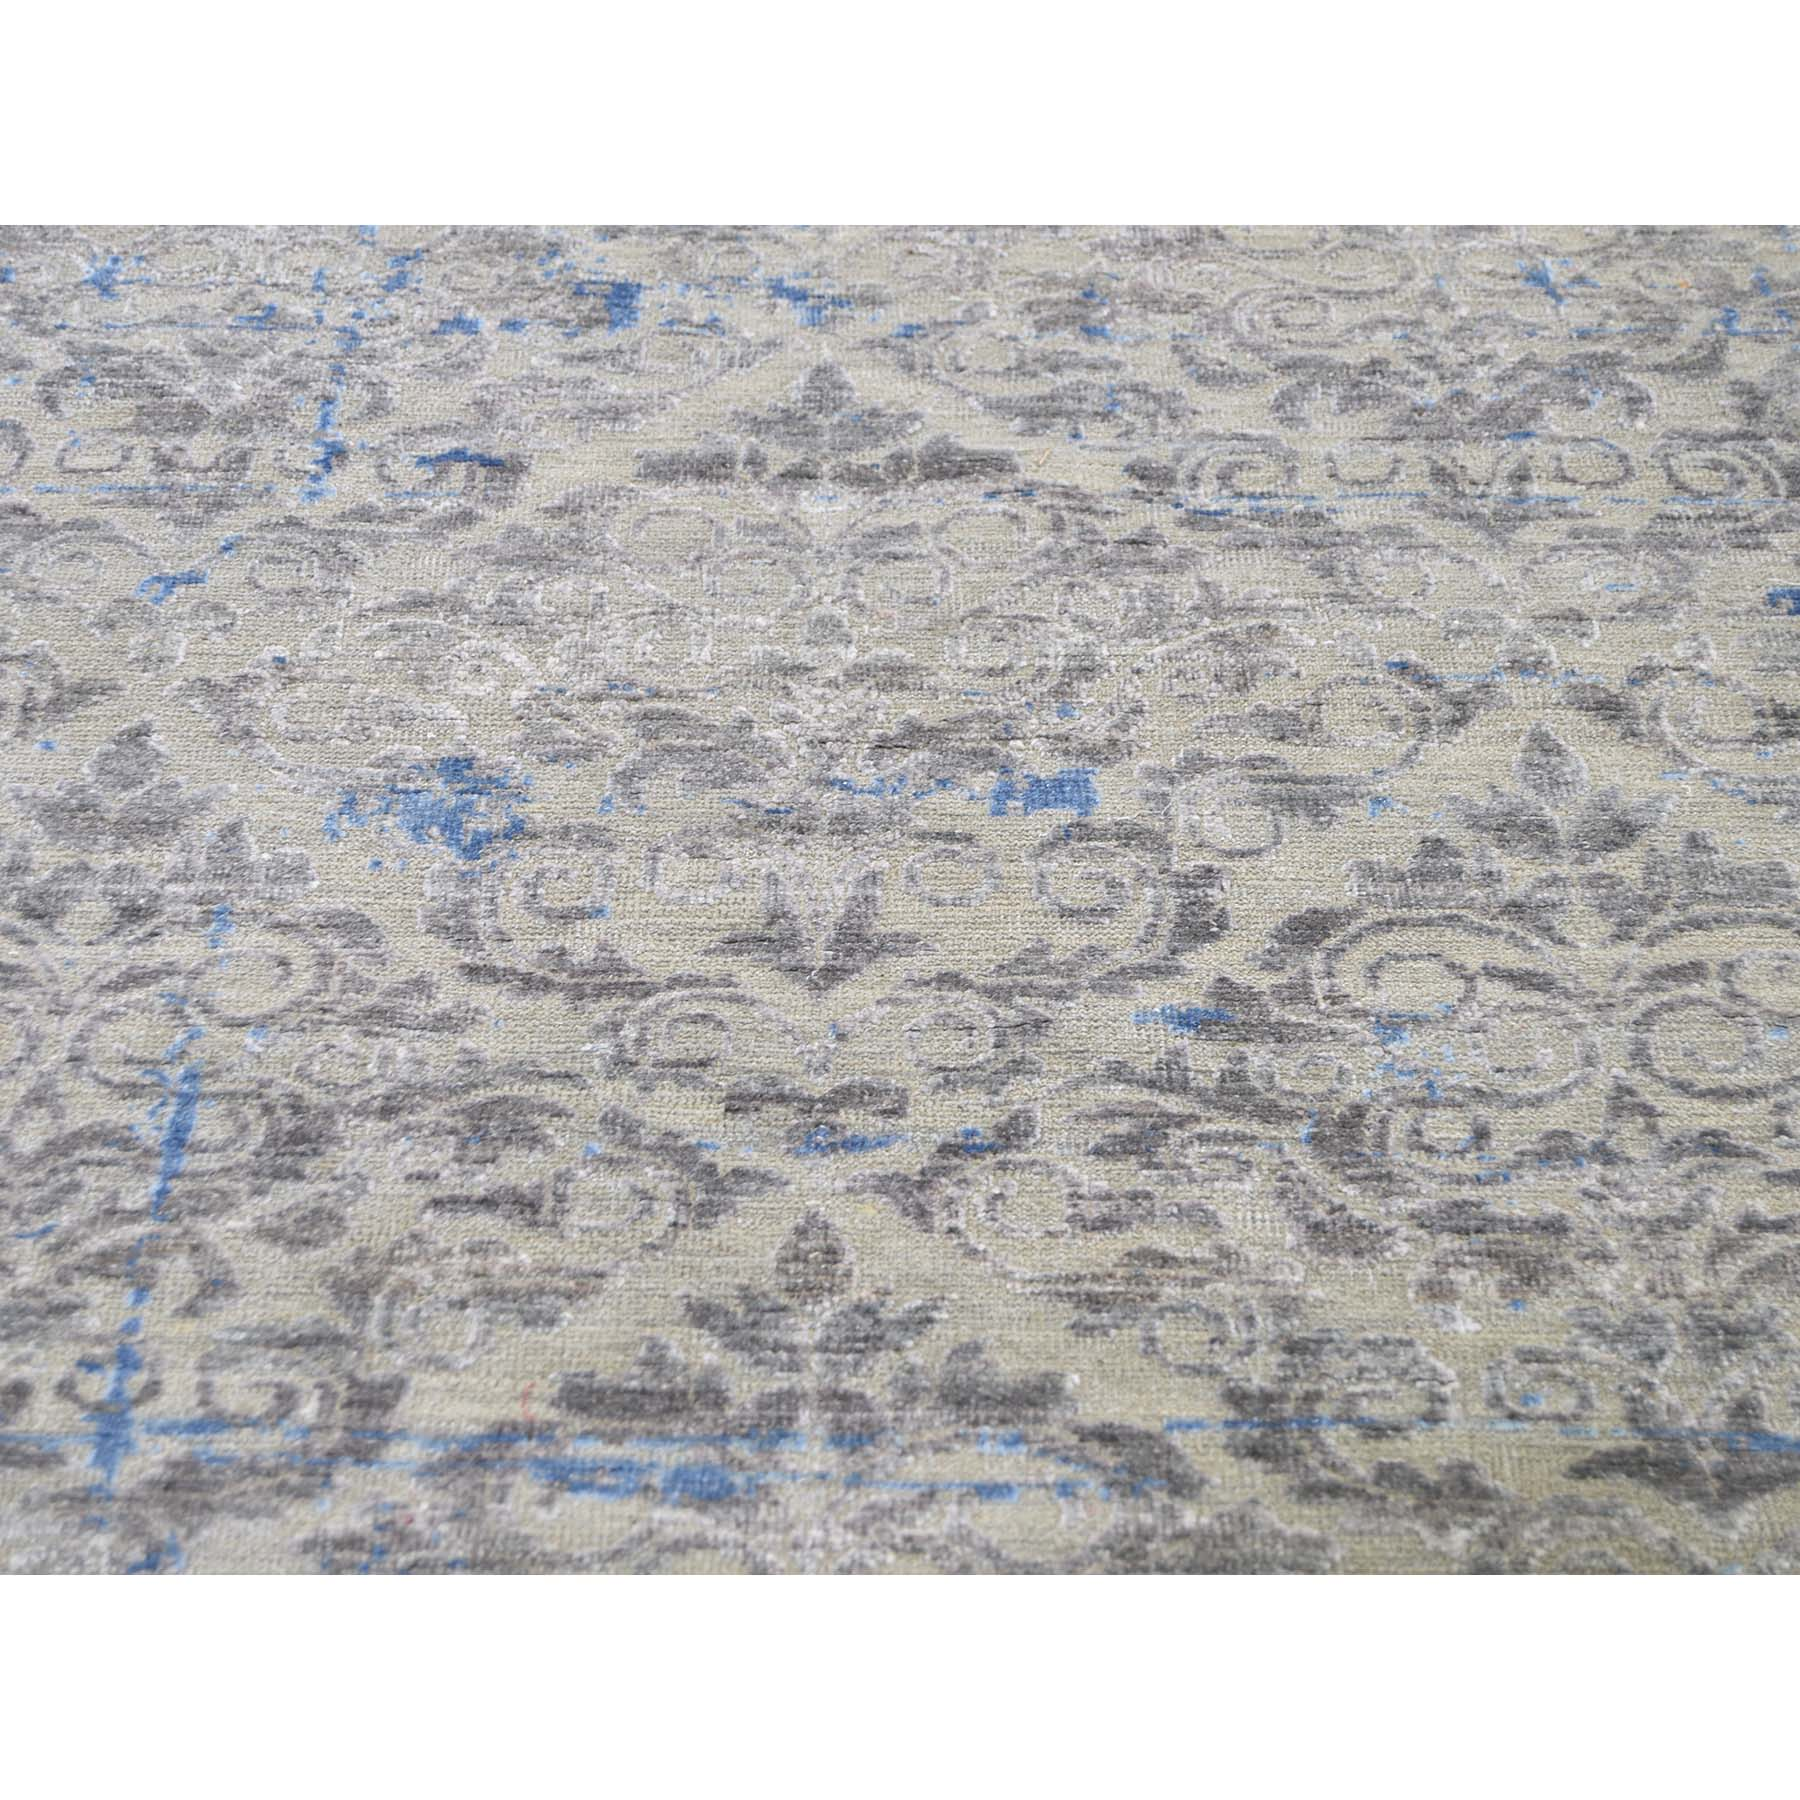 9-8 x13-6  Pure Silk With Oxidized Wool Trellis Garden Design Hand-Knotted Oriental Rug